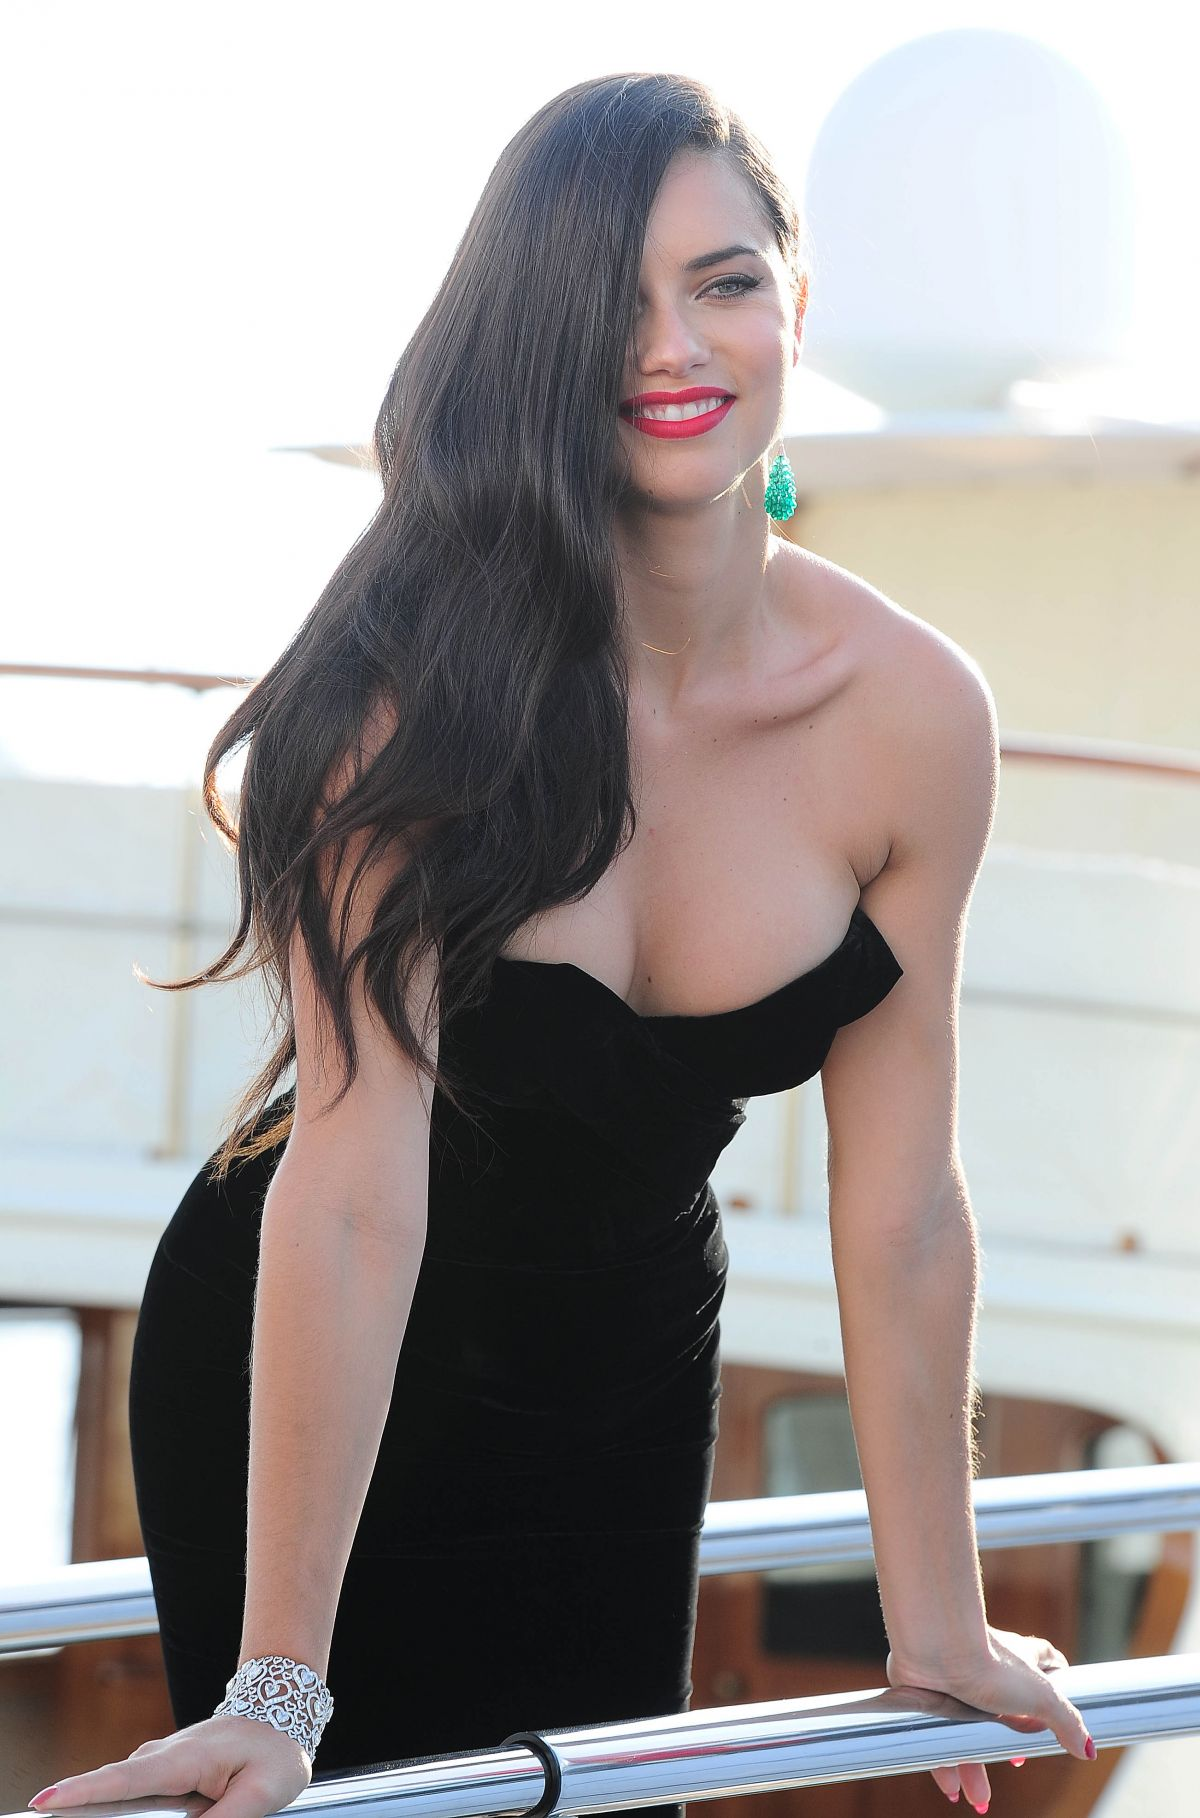 ADRIANA LIMA Boards at a Yacht in Cannes